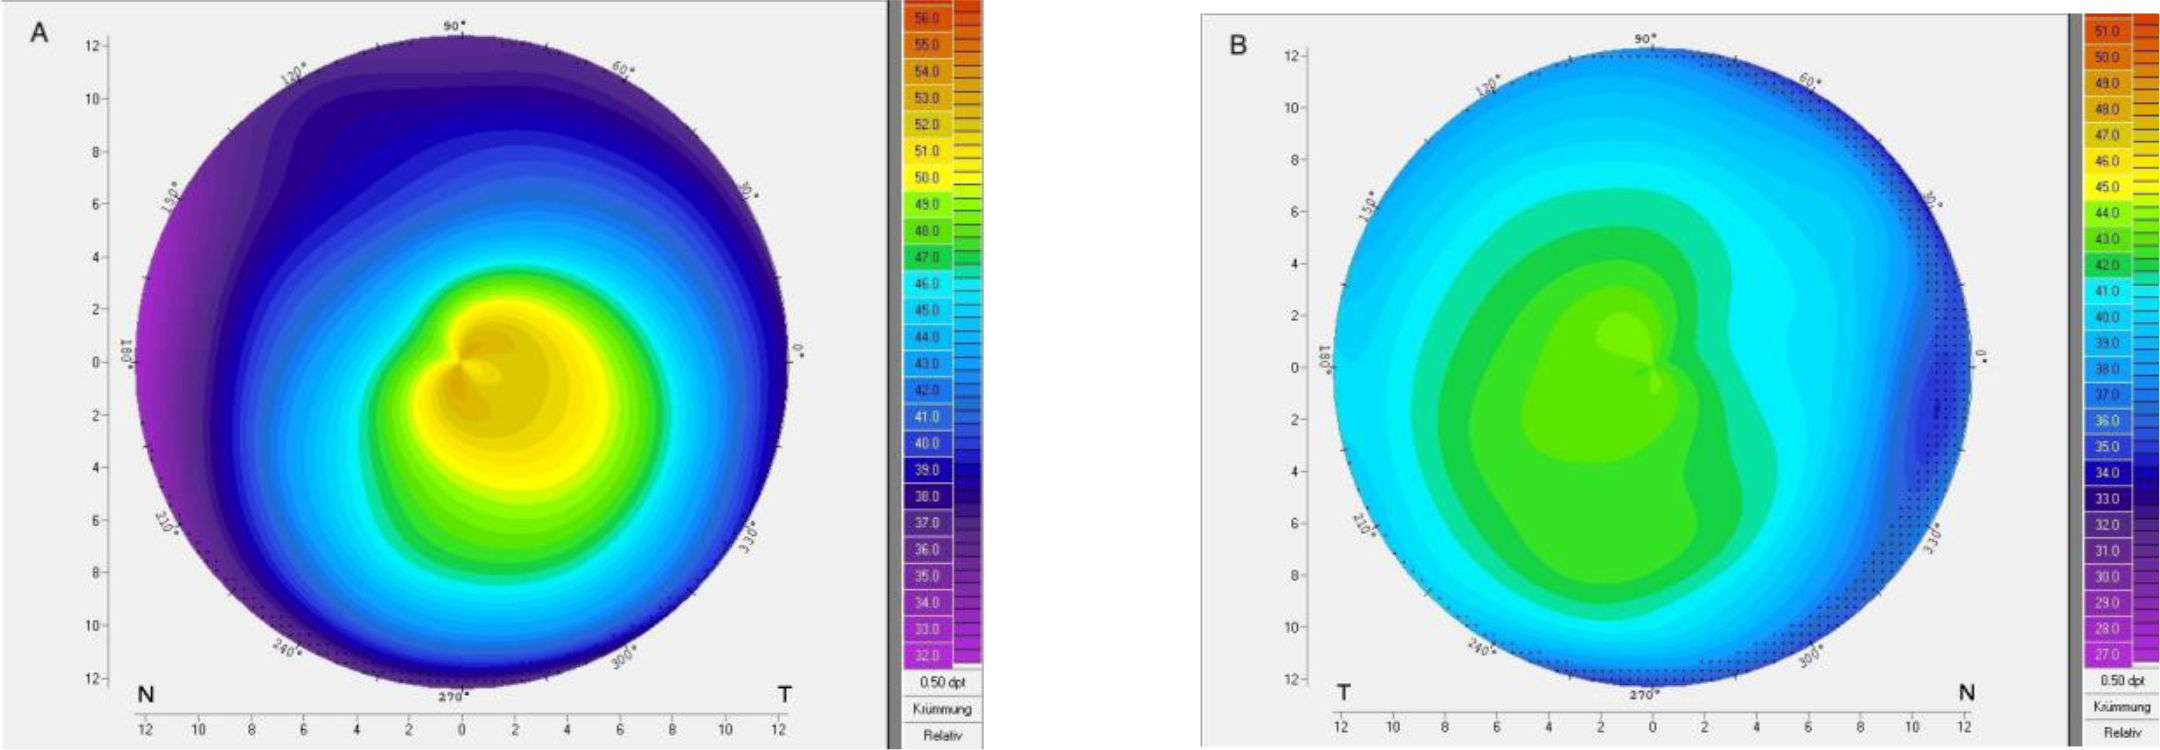 Corneal topography of patient 1 with very asymmetric keratoconus showing (A) ectasia and (B) regular topography in the fellow eye.